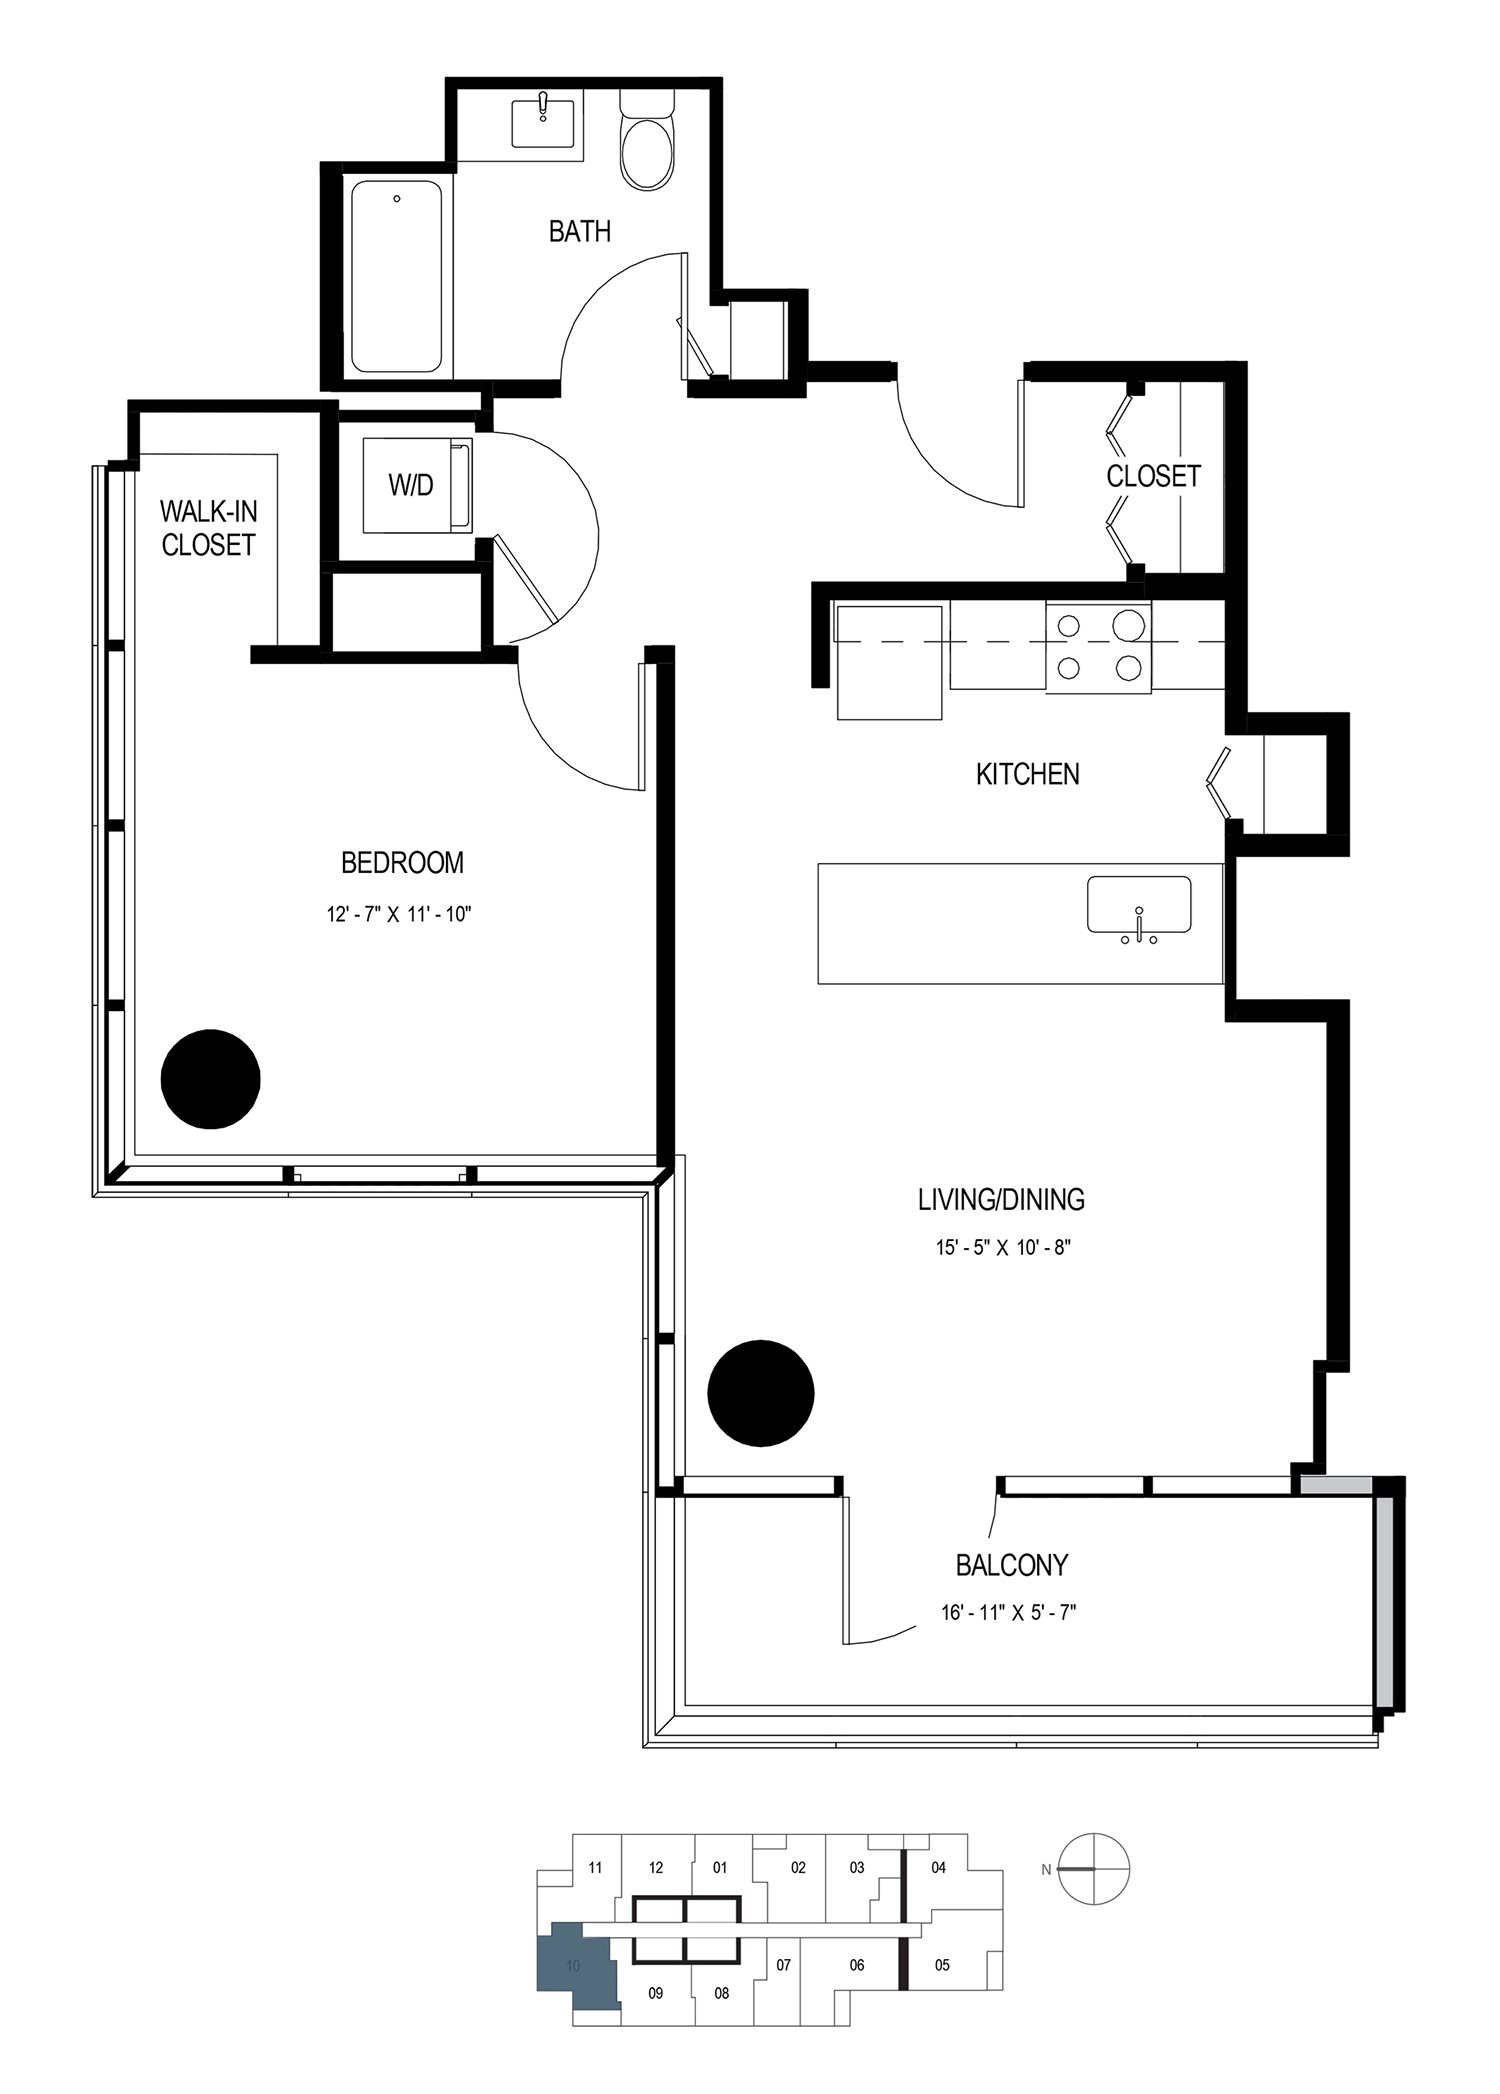 One Bedroom (730 sf) Floor Plan 8